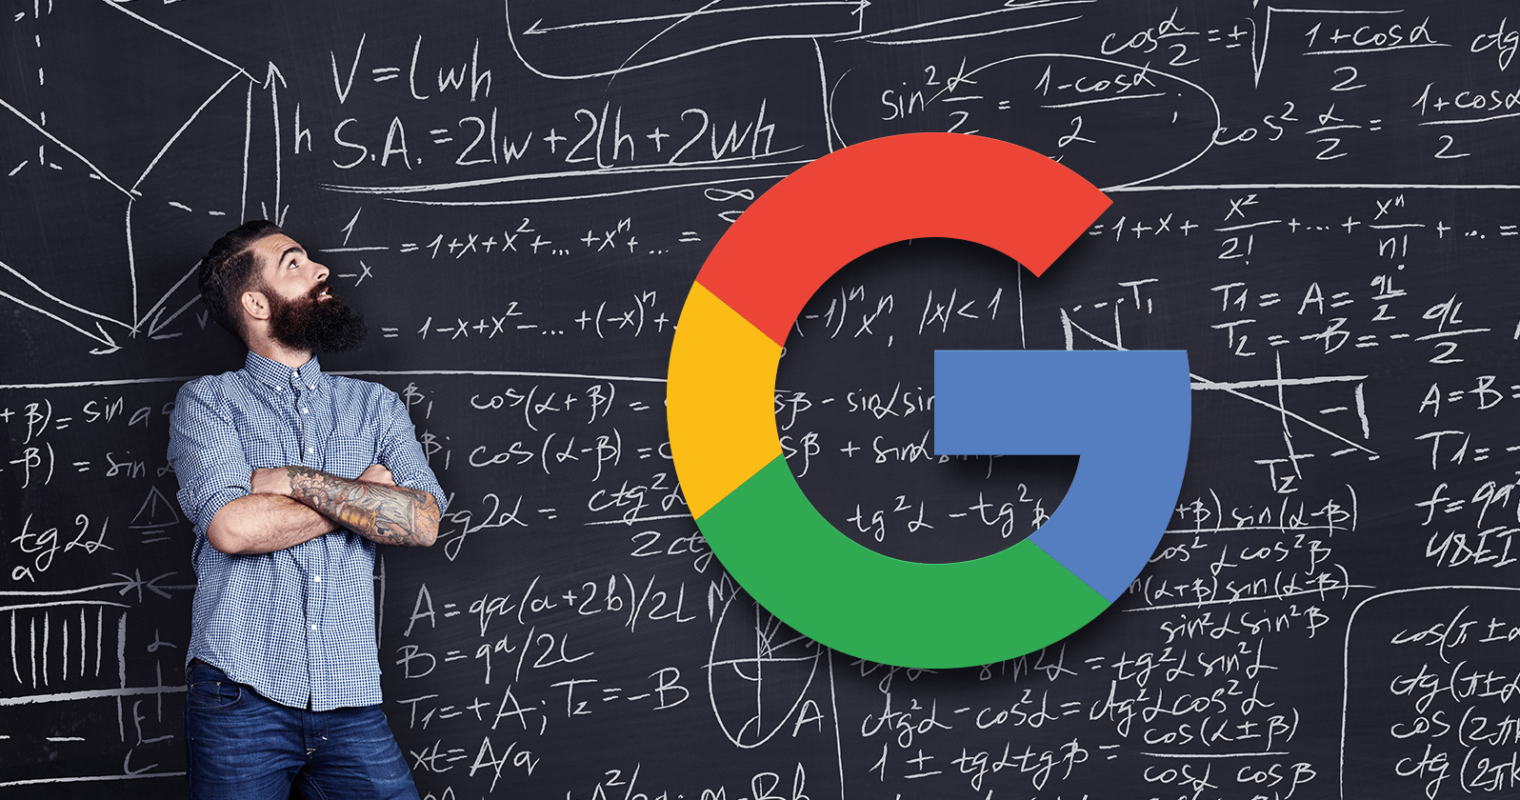 5 of the Most Complex SEO Problems & How to Fix Them